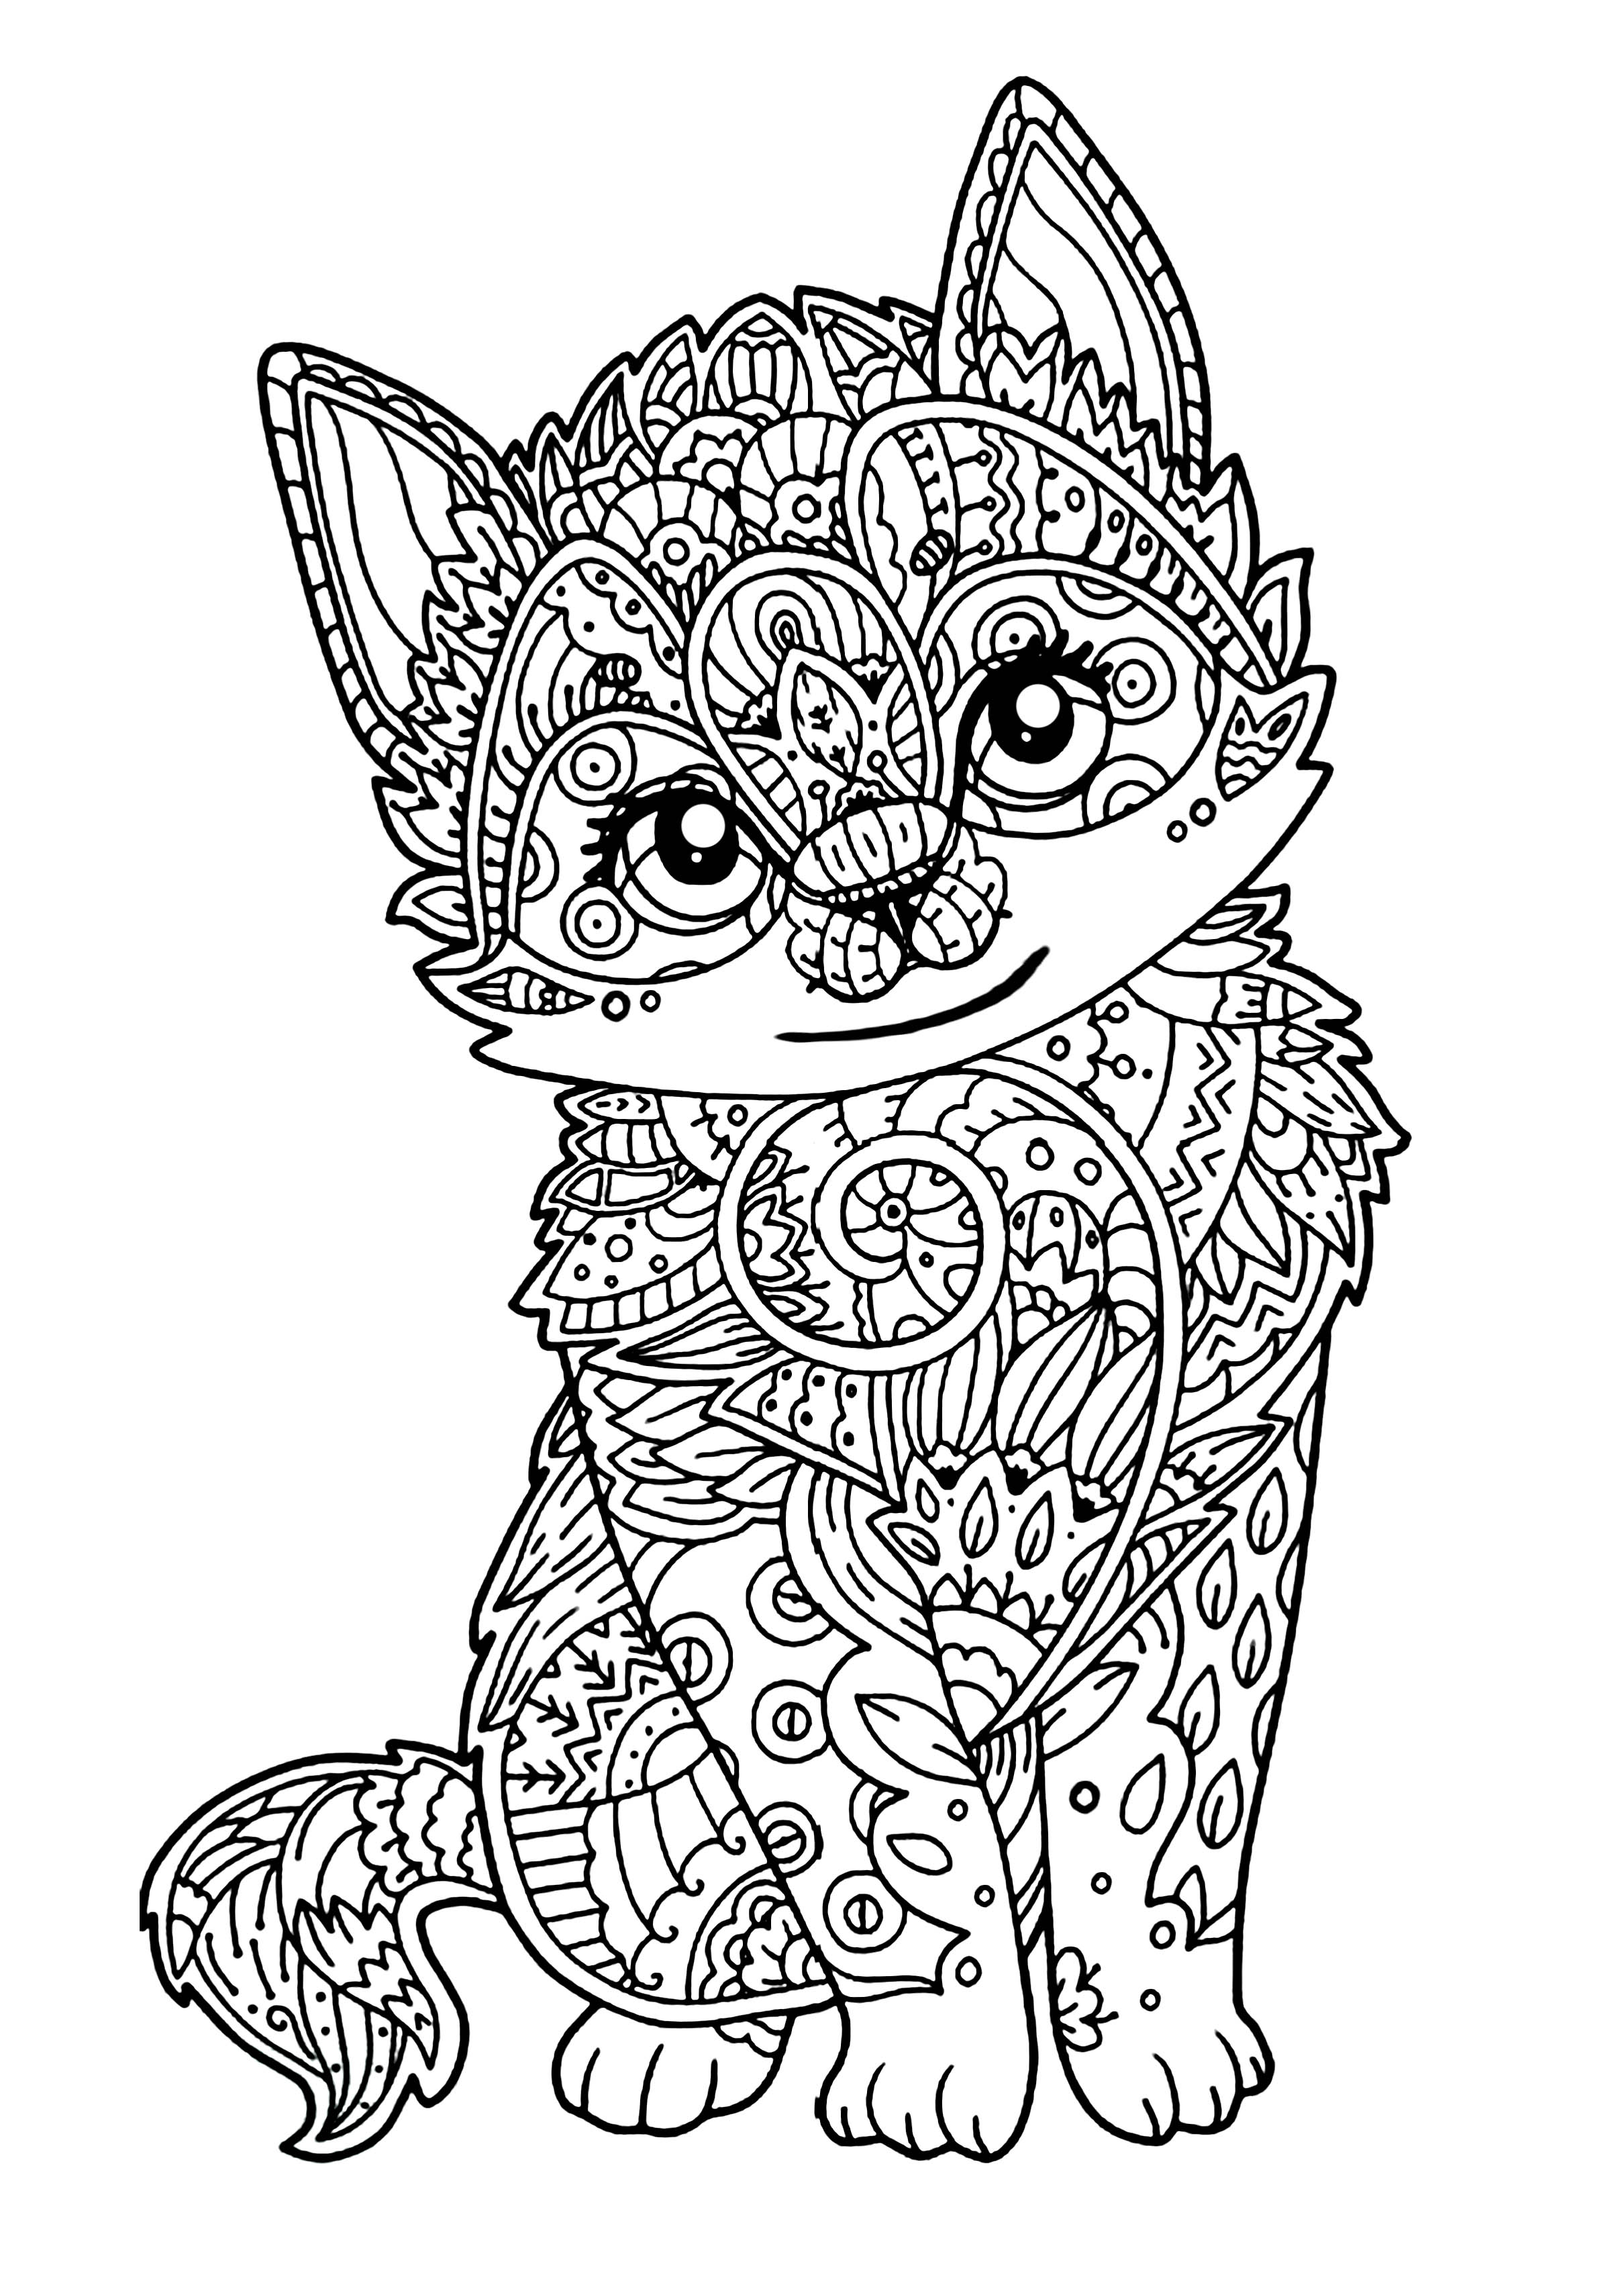 kitten coloring pictures cute kitten cats adult coloring pages kitten pictures coloring